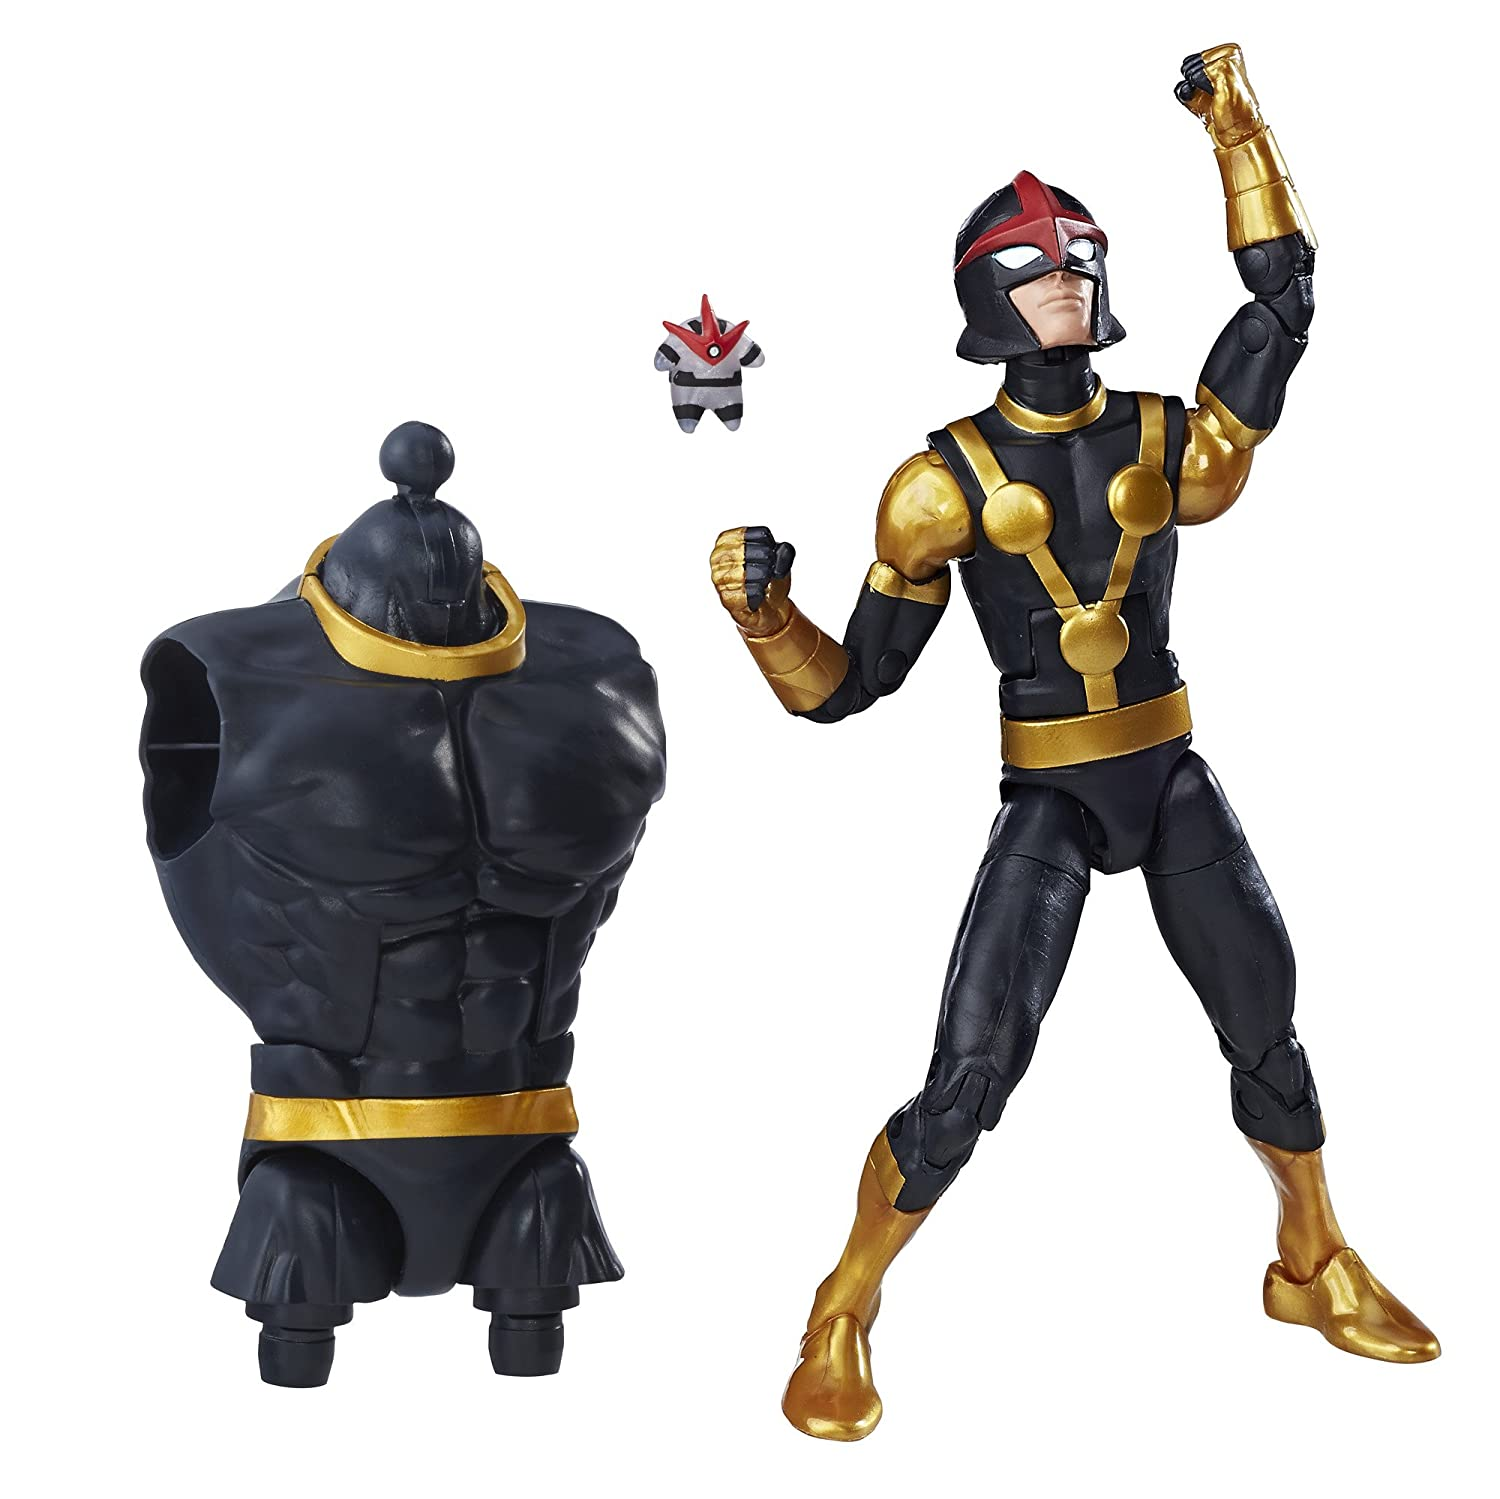 Marvel Guardians of the Galaxy 6-inch Legends Series Marvel' s Kid Nova Hasbro C0079